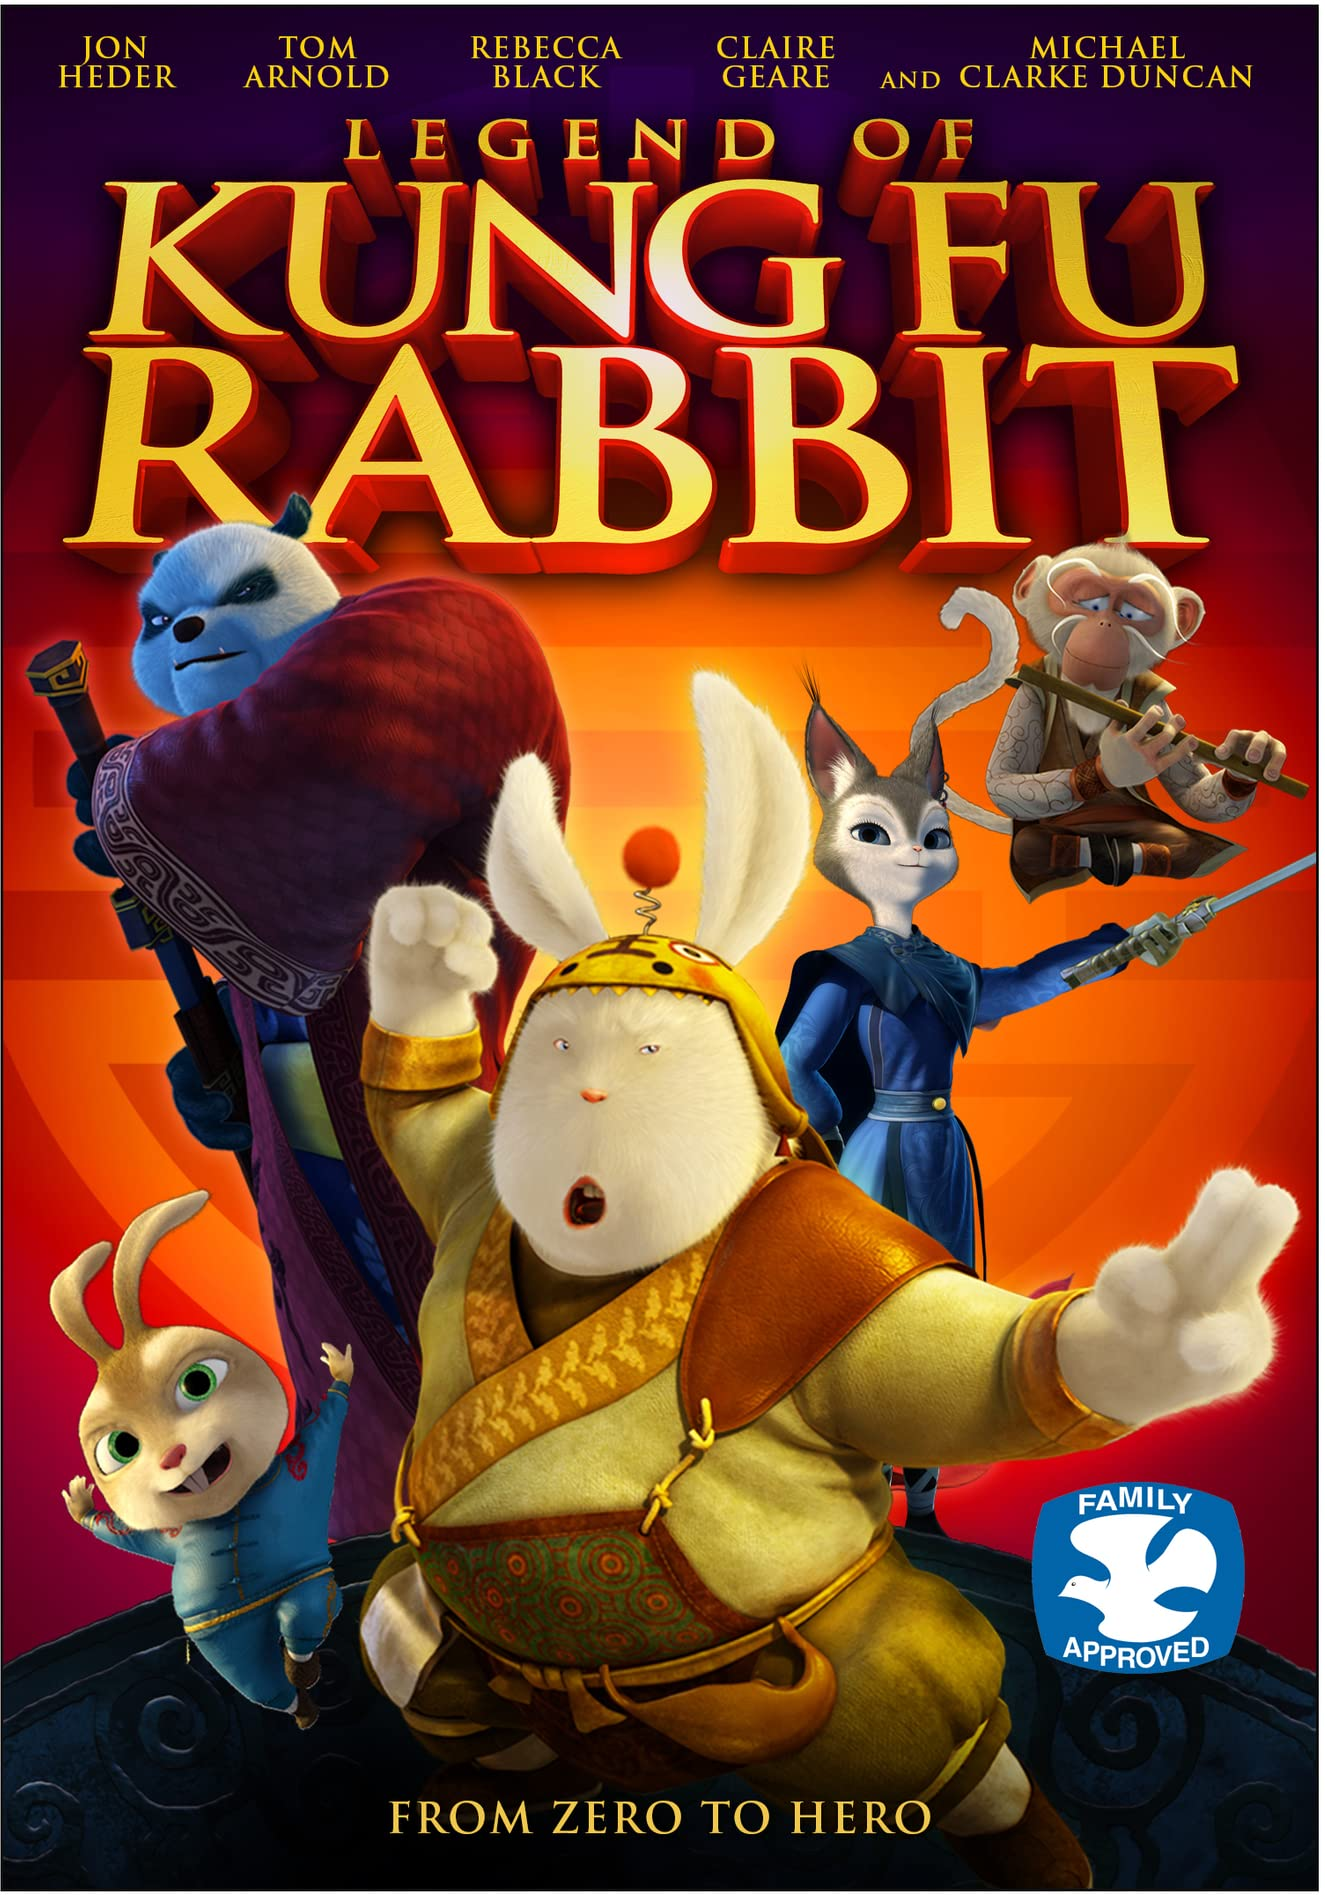 Download the Legend of Kung Fu Rabbit full movie tamil dubbed in torrent